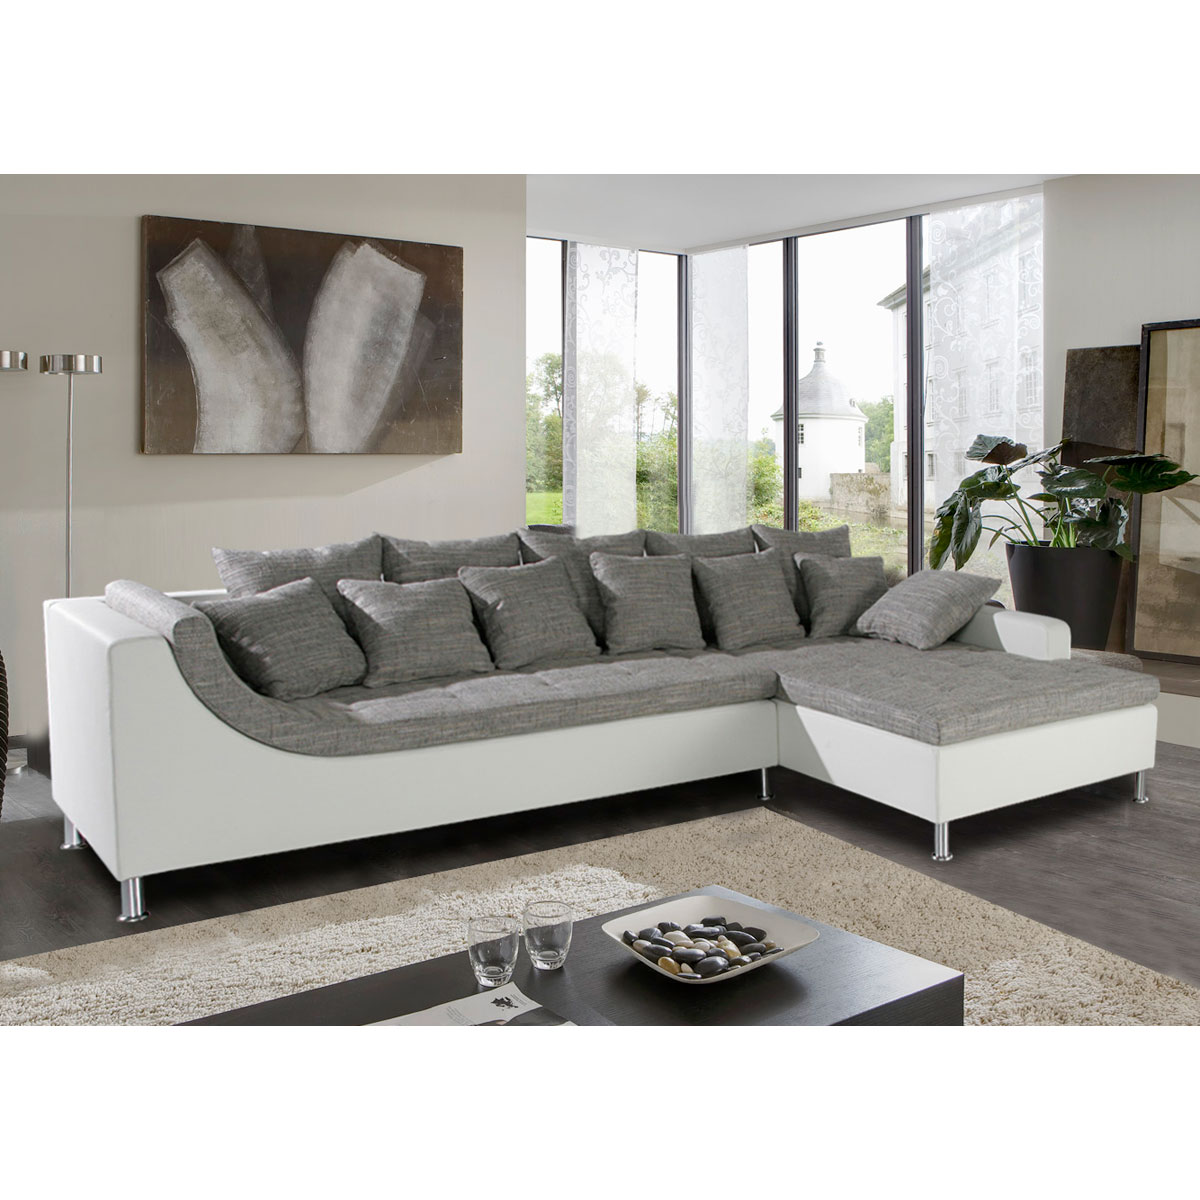 Polsterecke Montego Sofa Mit Ottomane Finest Related Post With Sofa Mit